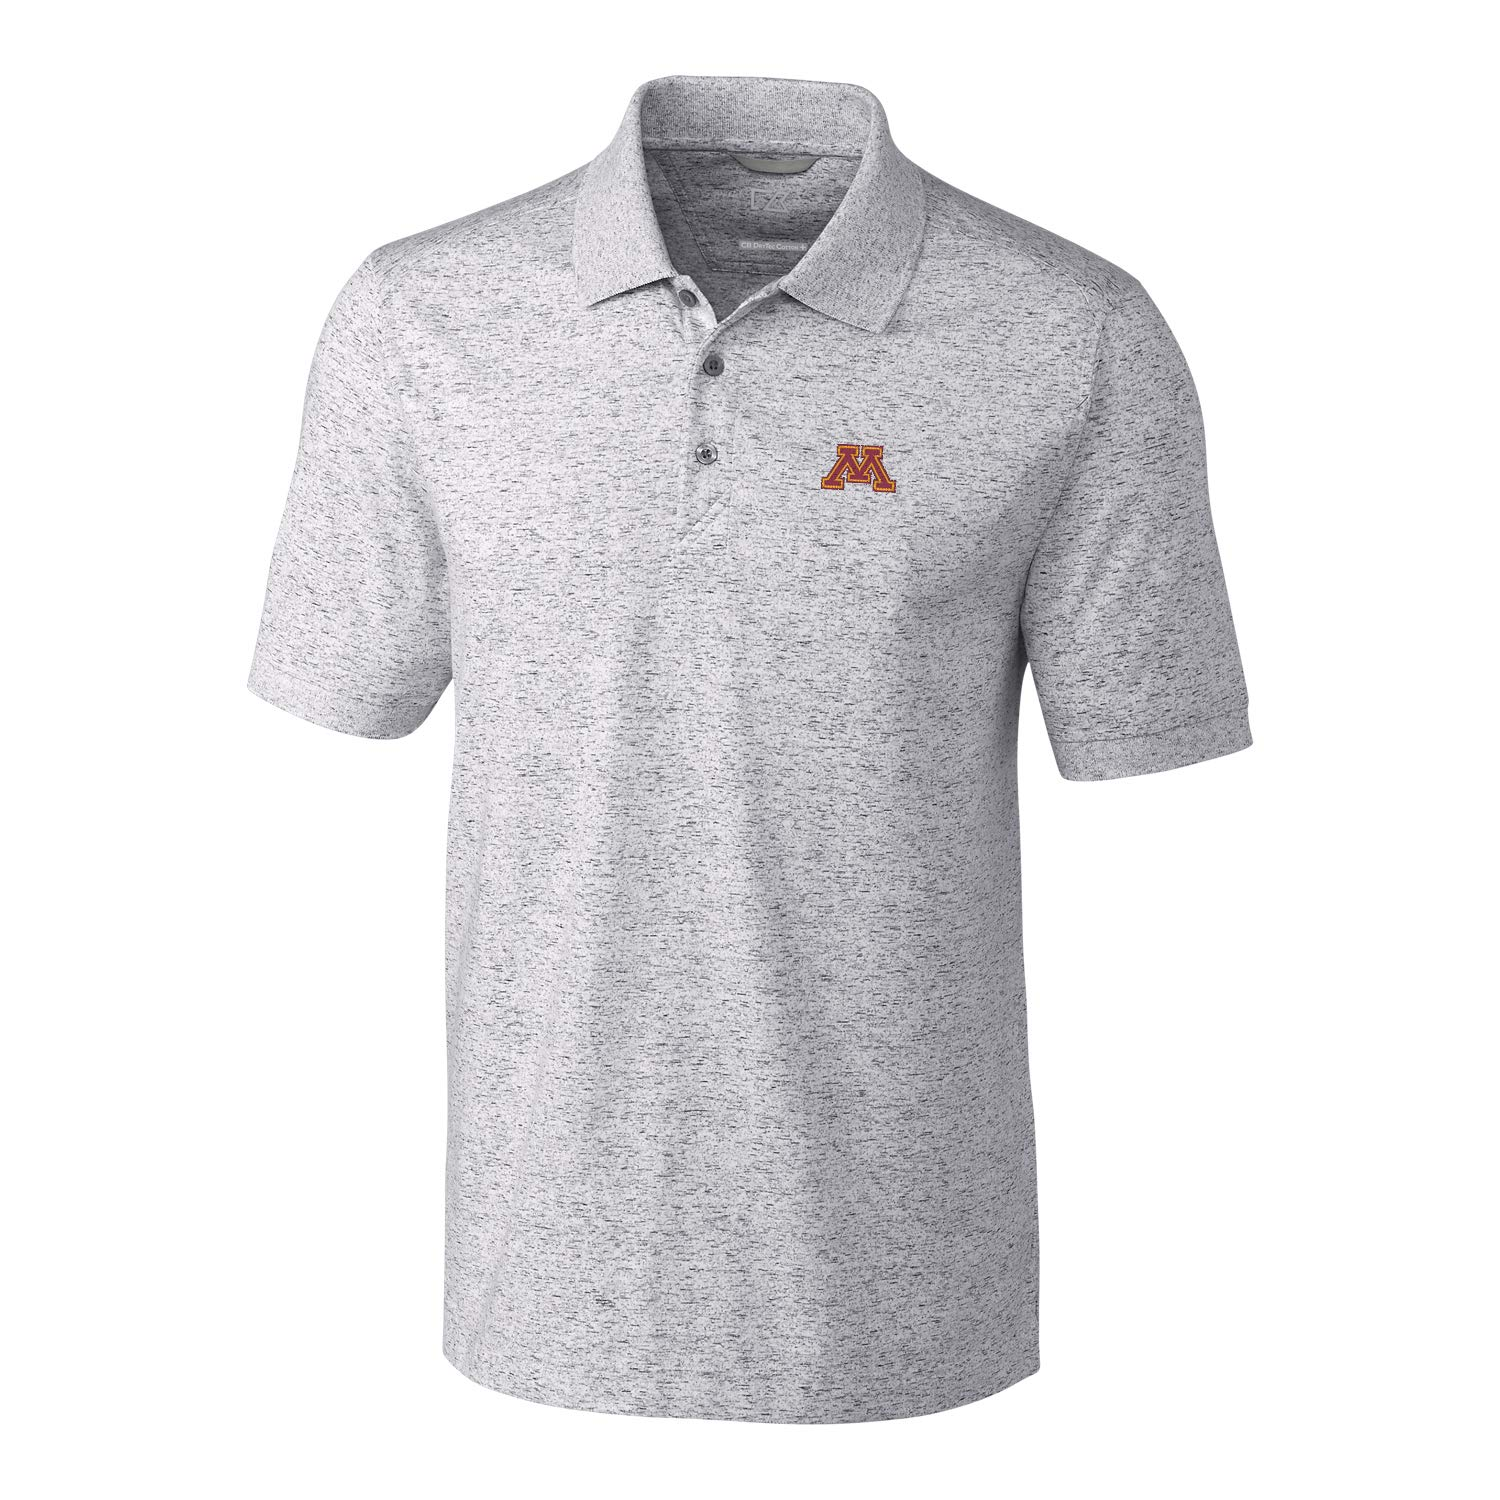 Elemental Grey Medium NCAA Mens Short Sleeve Space Dye Advantage Polo